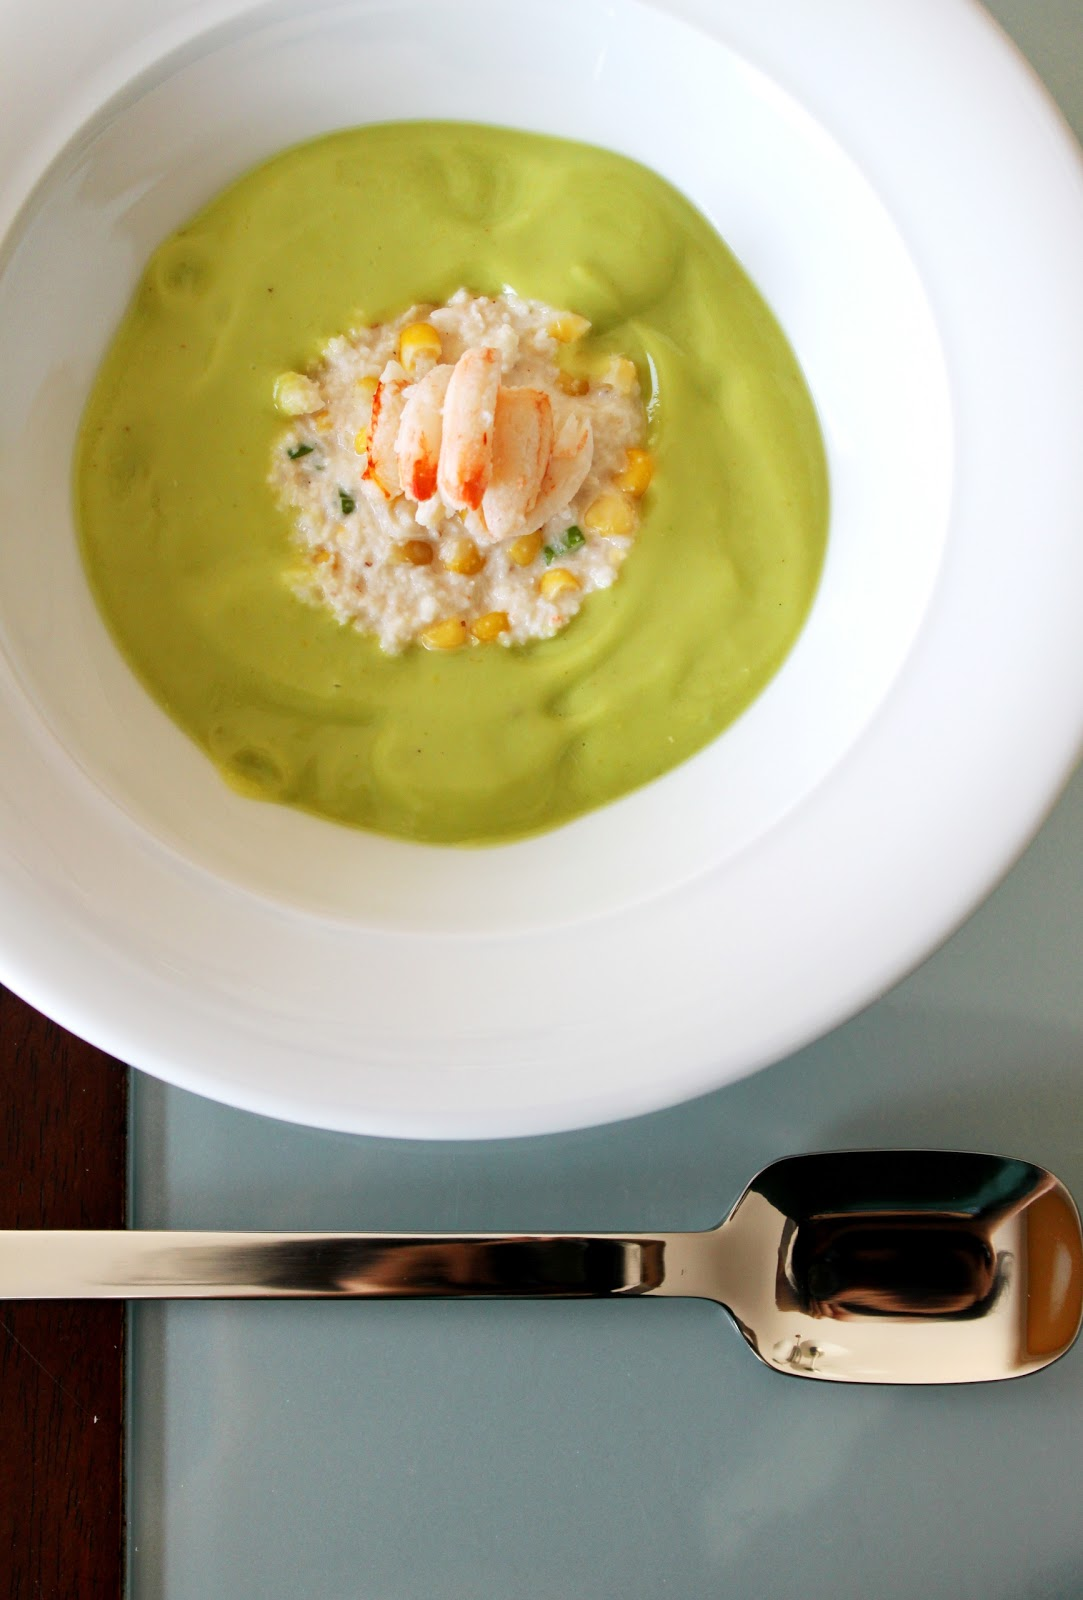 Chilled Avocado Soup with Crab and Corn Mayo | My ...